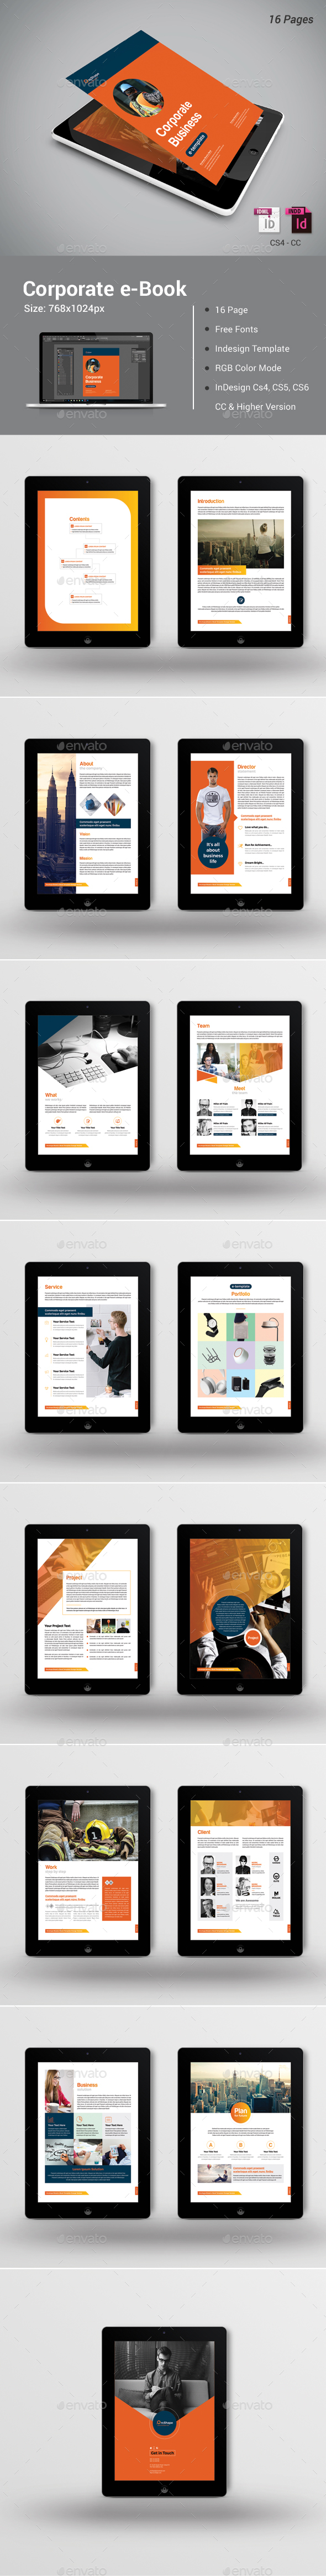 GraphicRiver Corporate Ebook 20619193